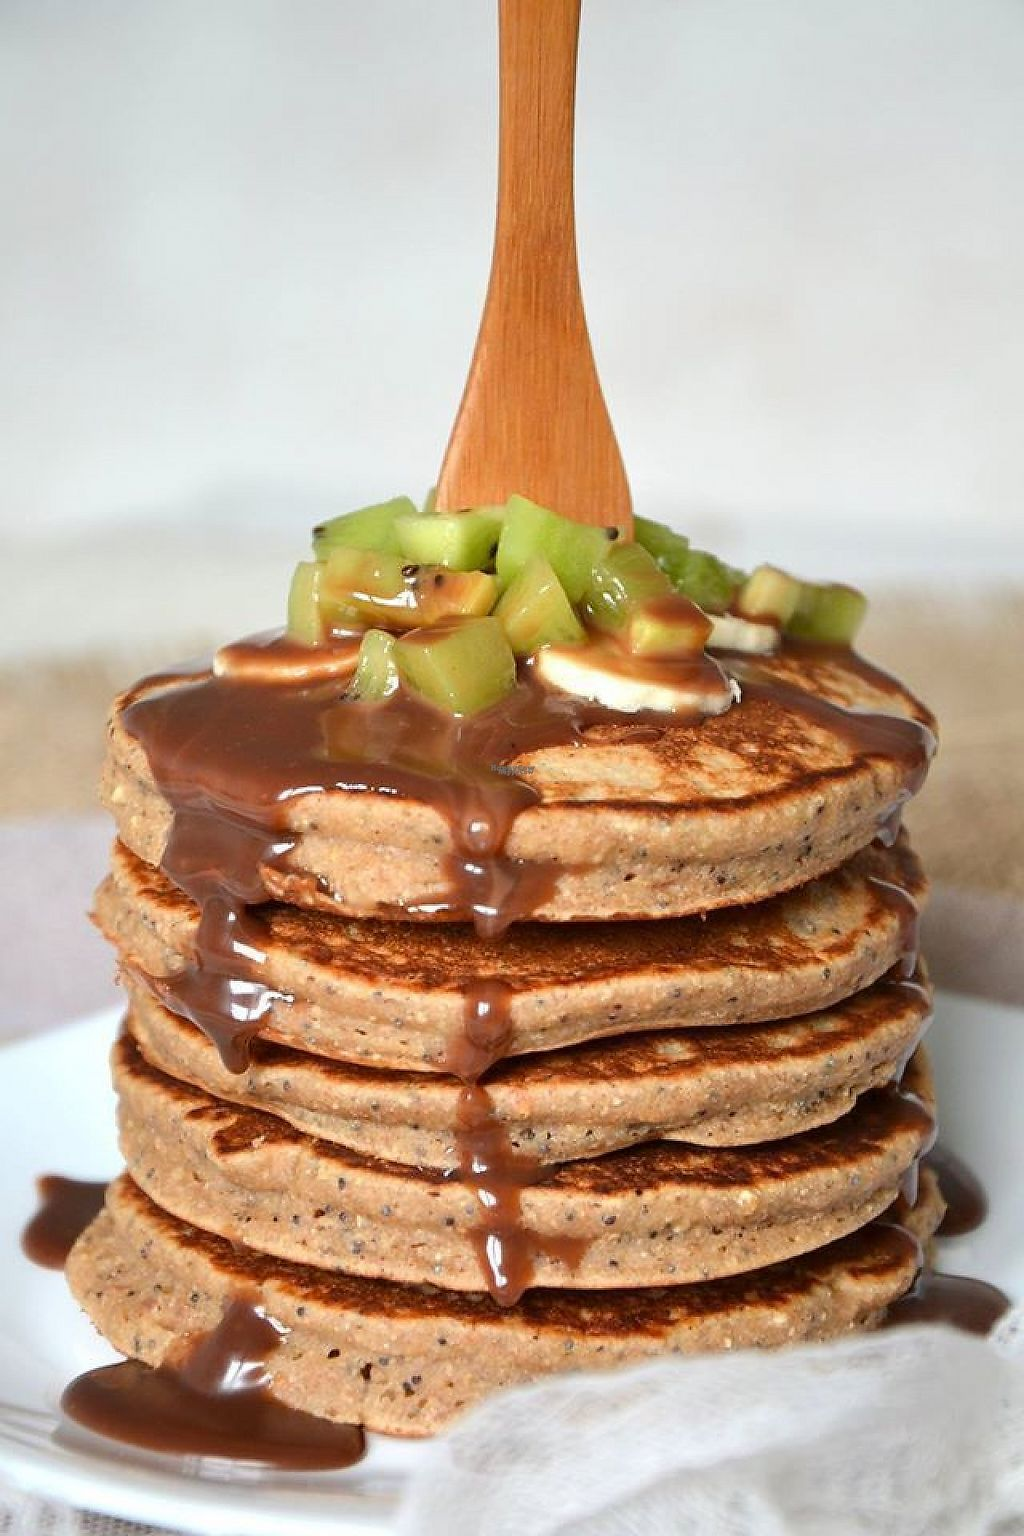 "Photo of La Vie Claire  by <a href=""/members/profile/community"">community</a> <br/>vegan pancakes  <br/> February 4, 2017  - <a href='/contact/abuse/image/71978/221849'>Report</a>"